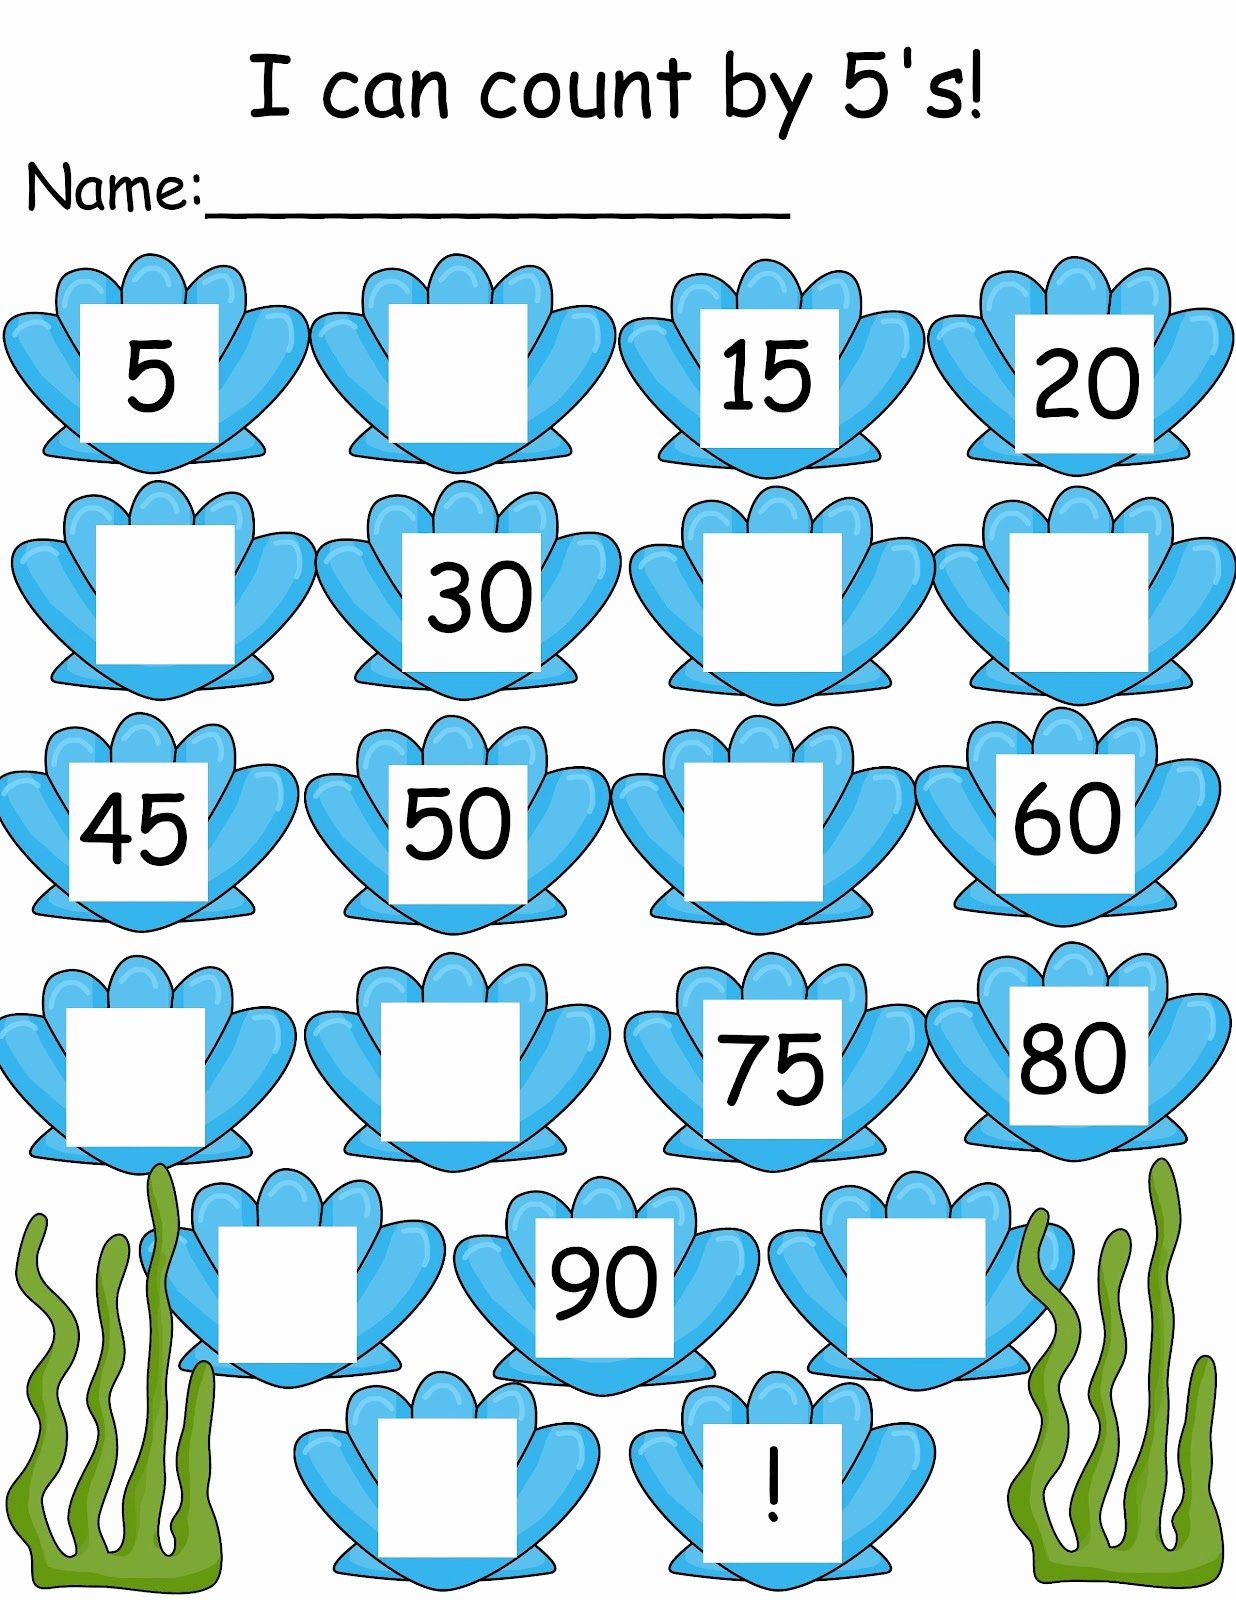 Count by 5s Worksheet Unique Count by 5s Worksheets Printable